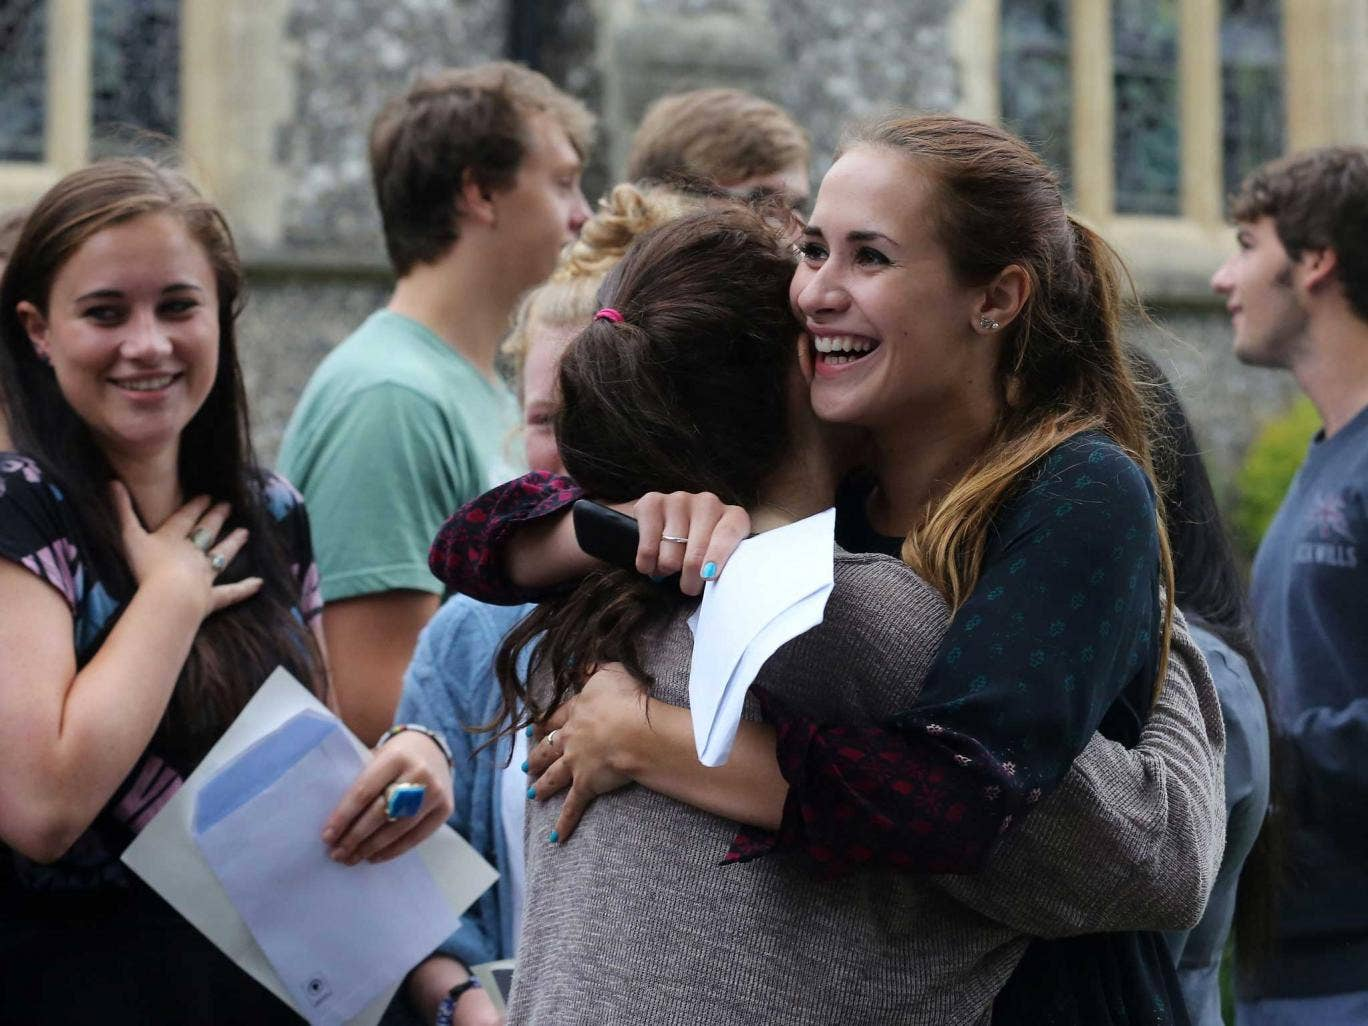 Hannah Short celebrates grades of A*, A and B at Brighton College in East Sussex